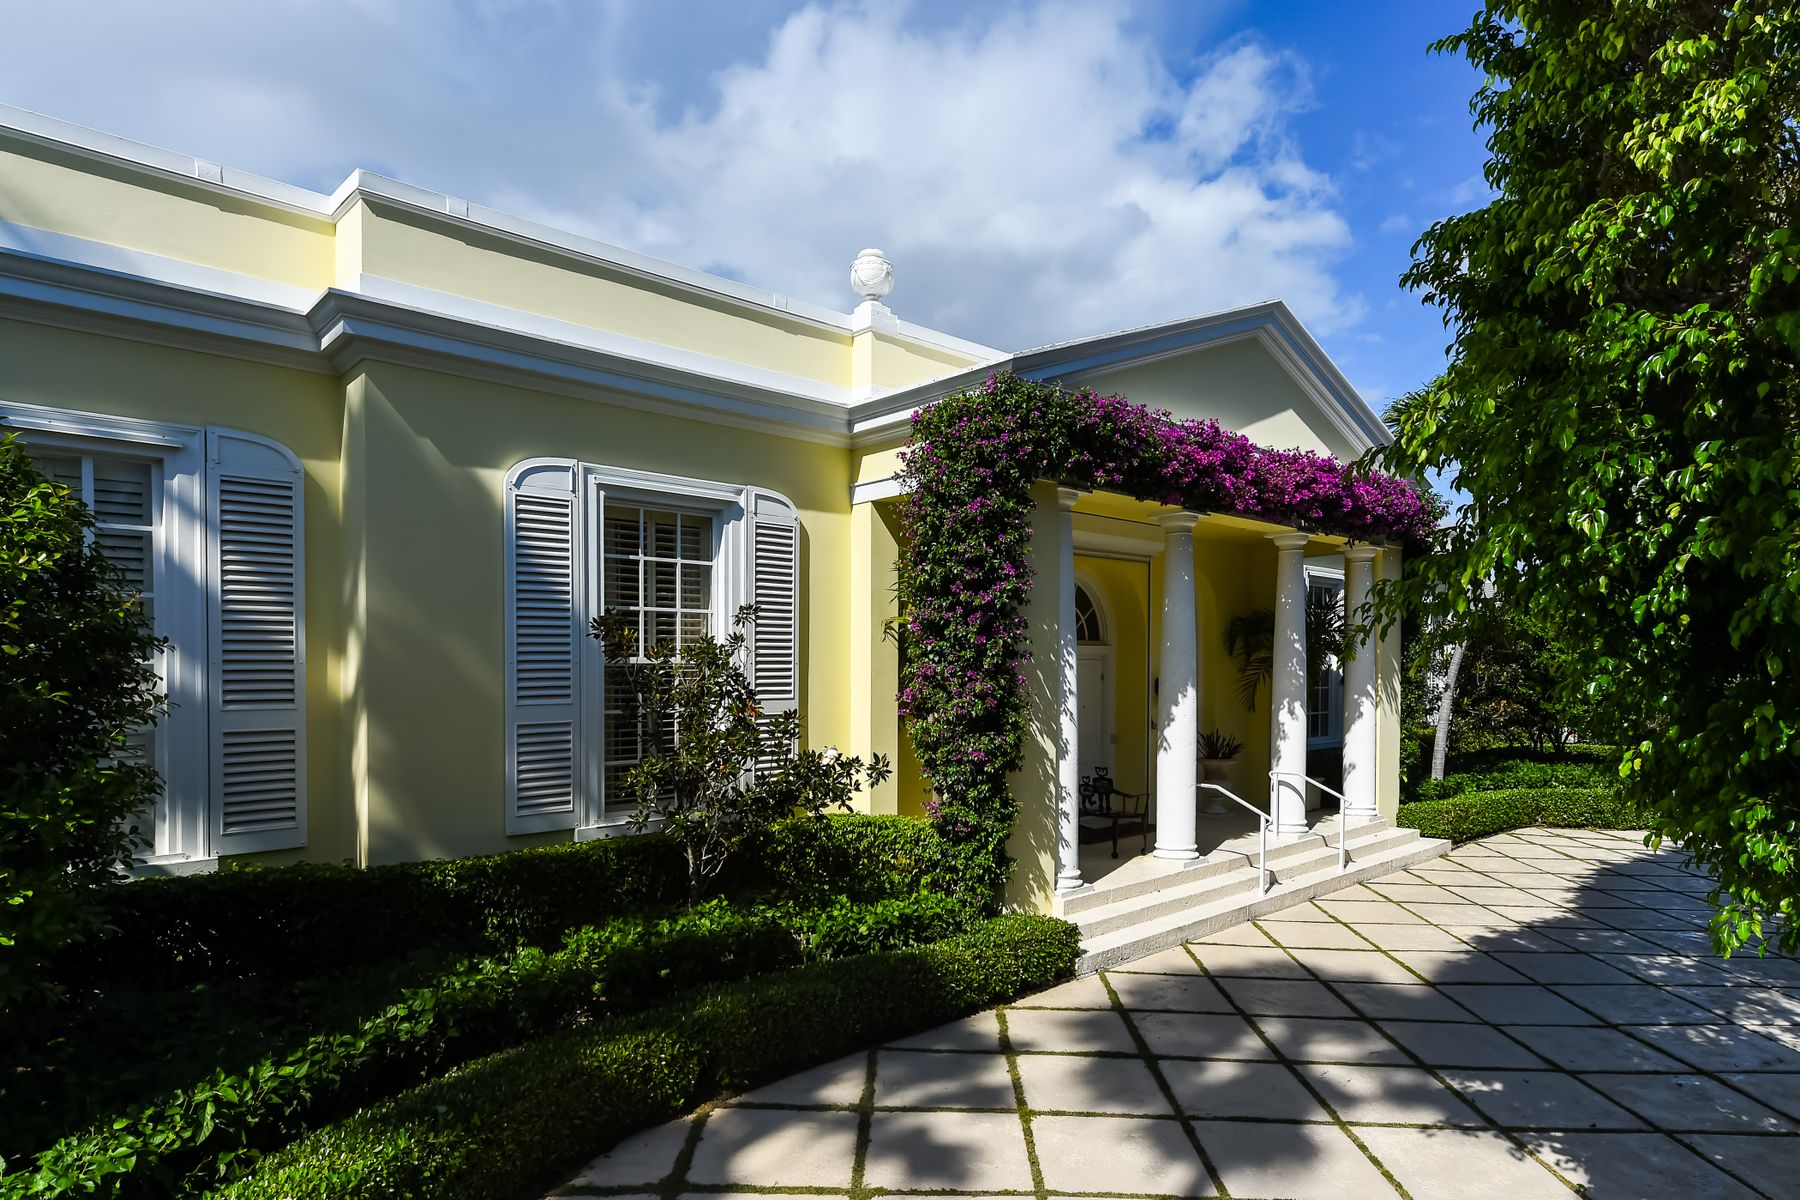 Single Family Home for Active at Charming Regency 1020 N Ocean Blvd Palm Beach, Florida 33480 United States